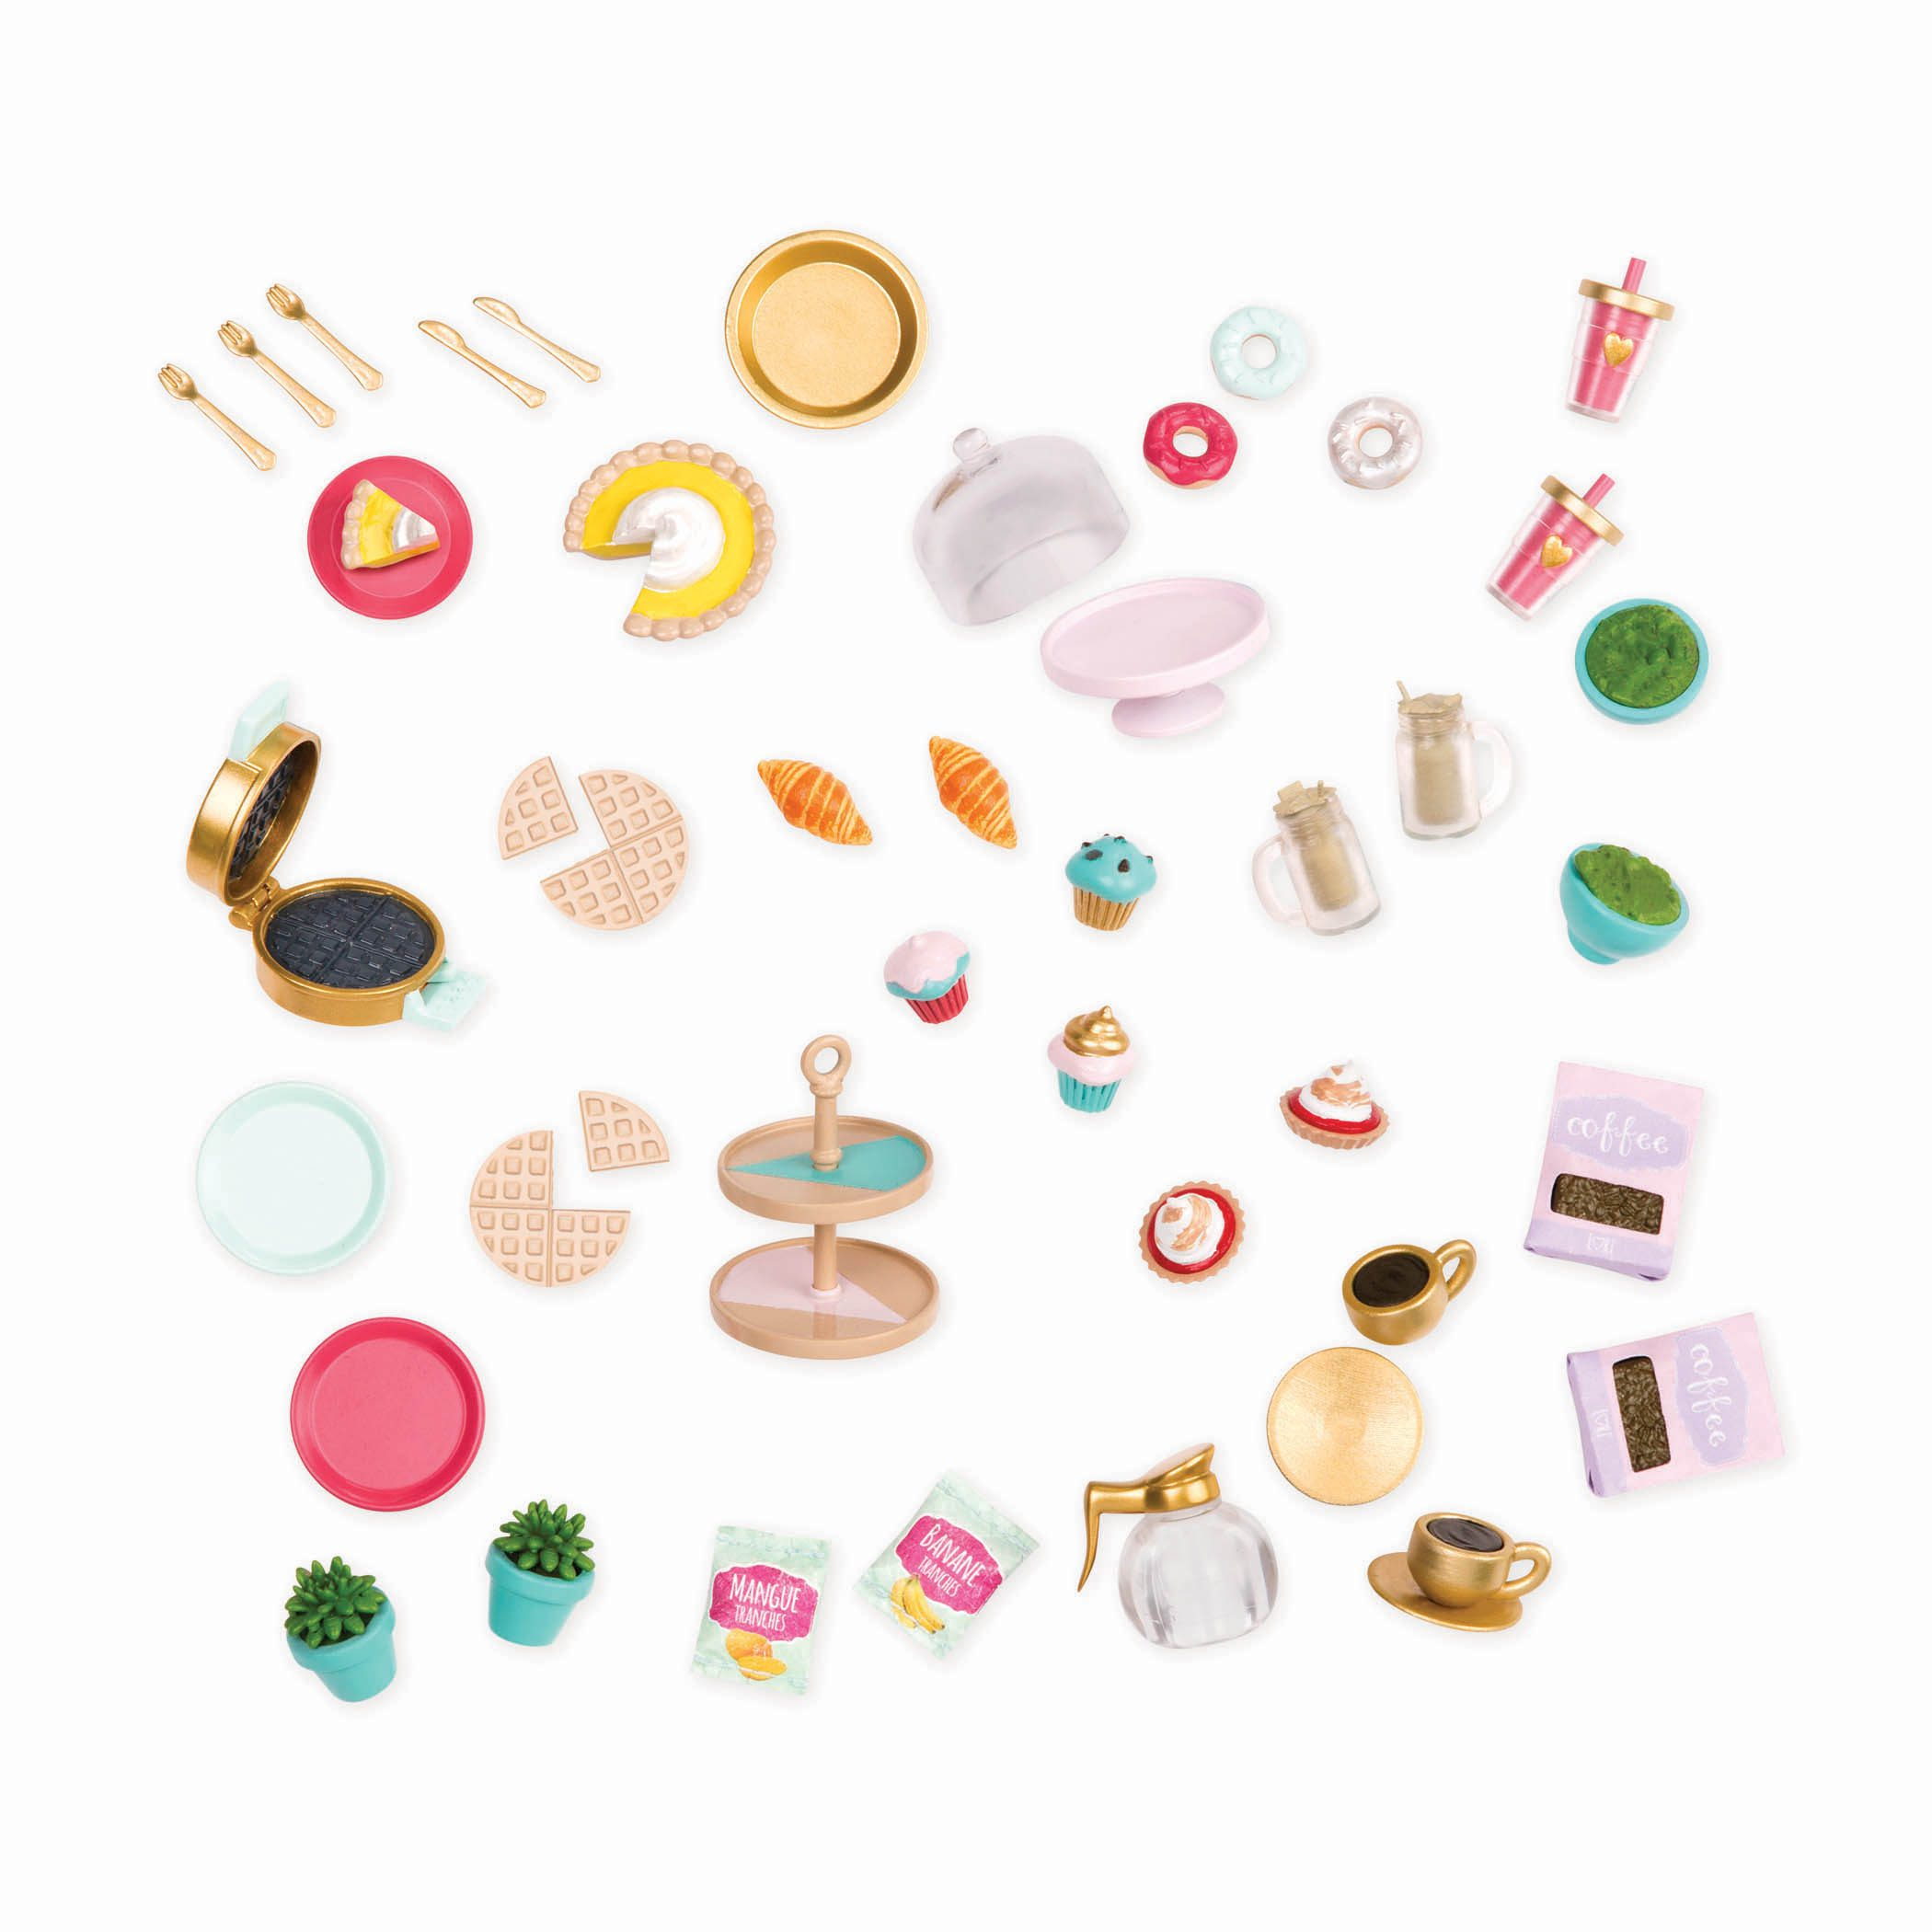 Coffee Shop Sweets and Accessories | Playset for 6-inch Dolls | Lori